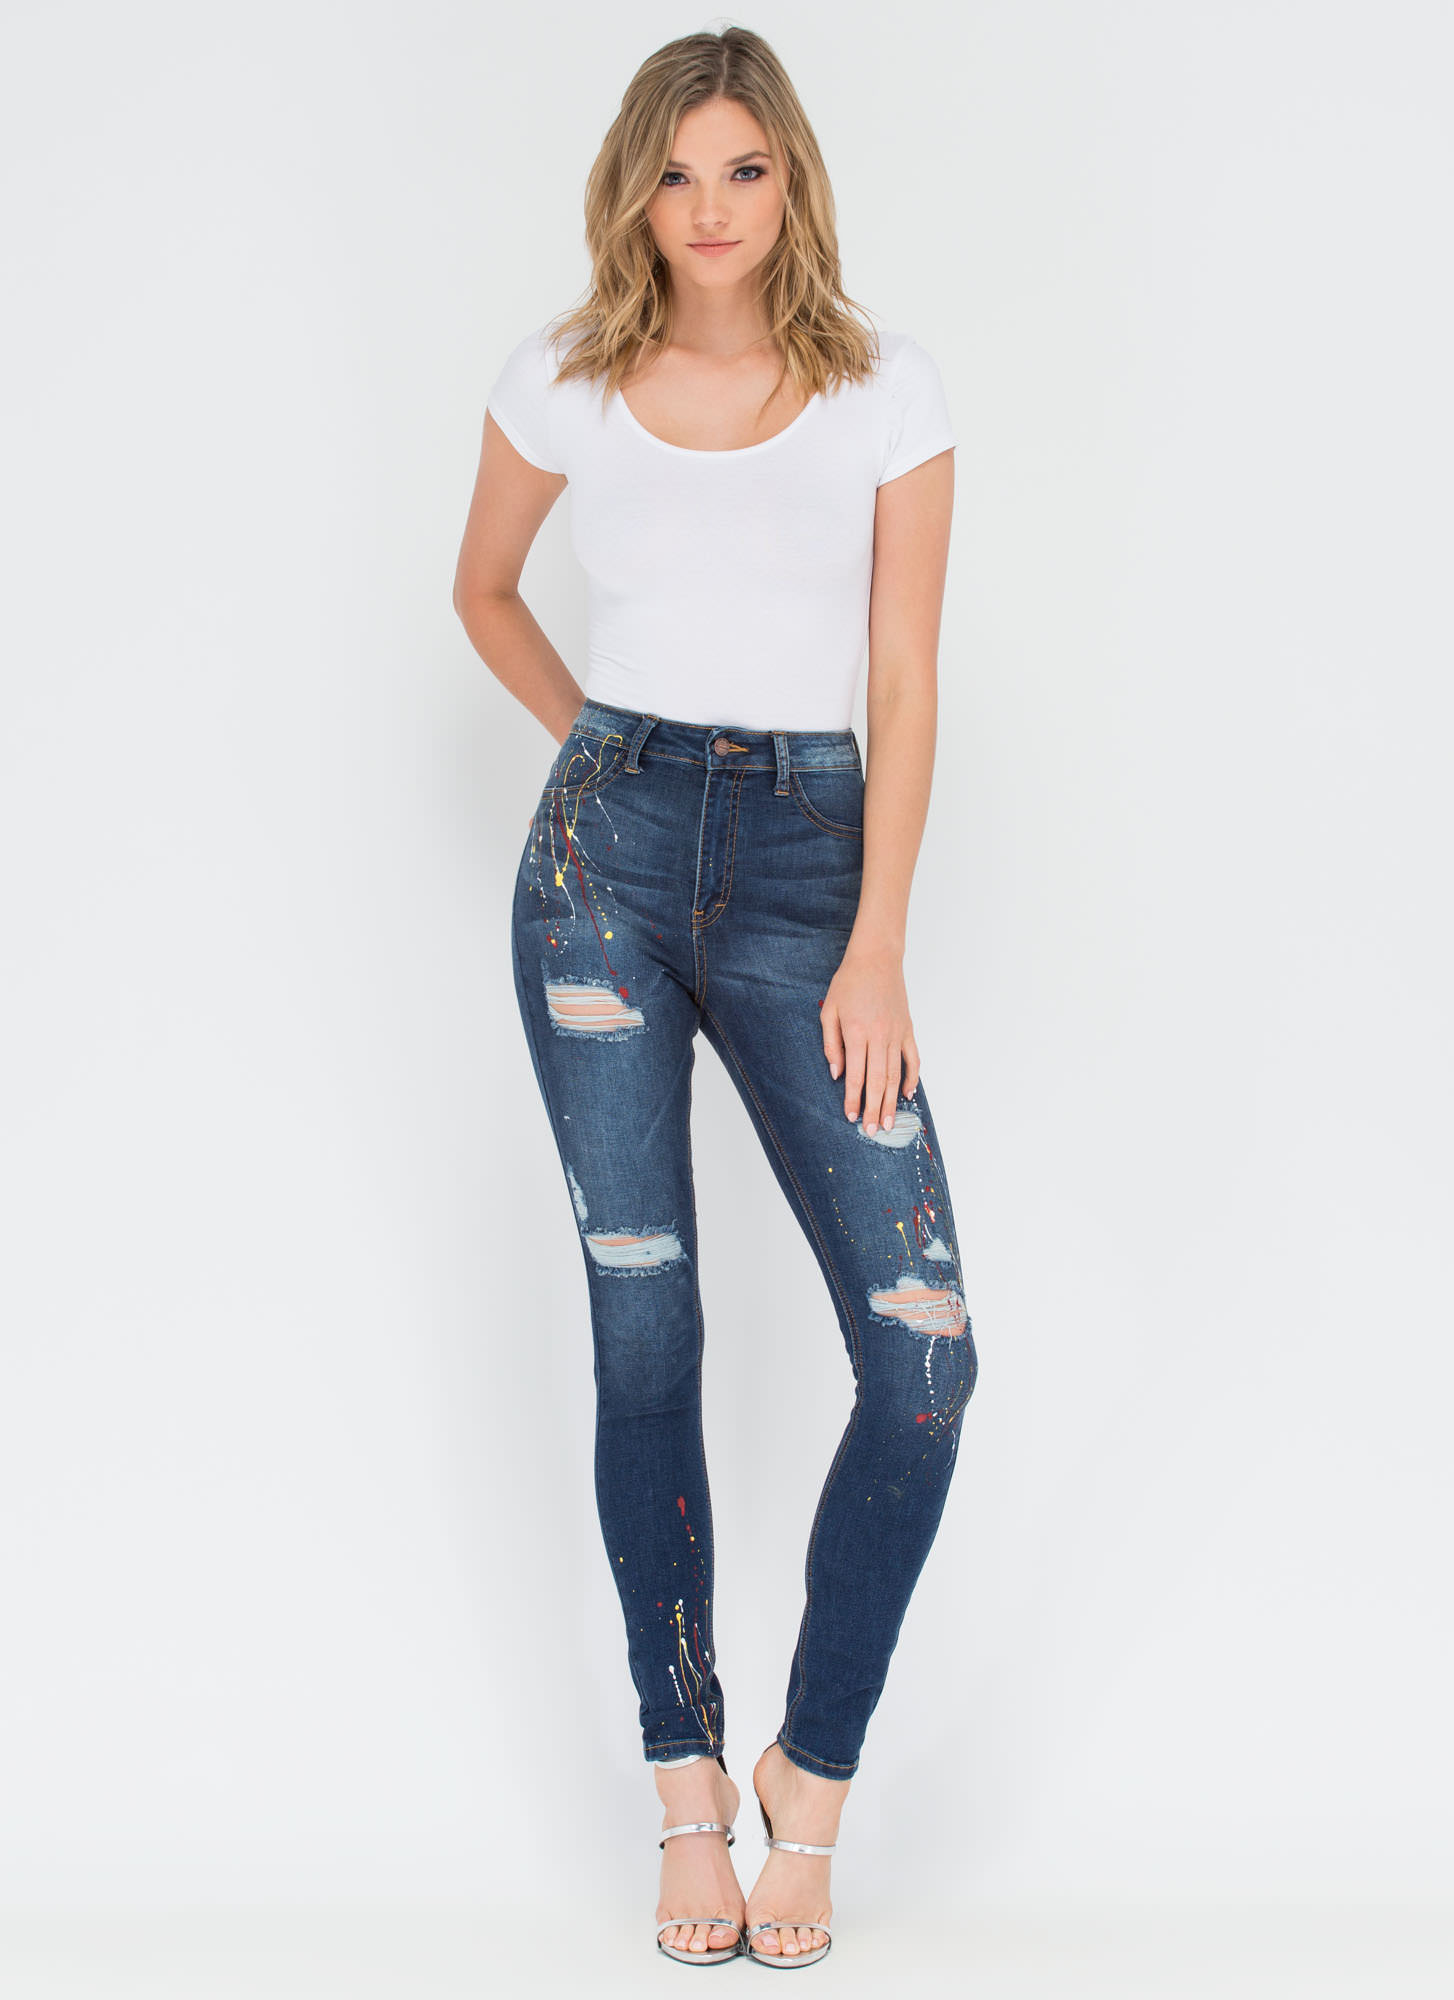 Fine Arts Distressed Spattered Jeans DKBLUE